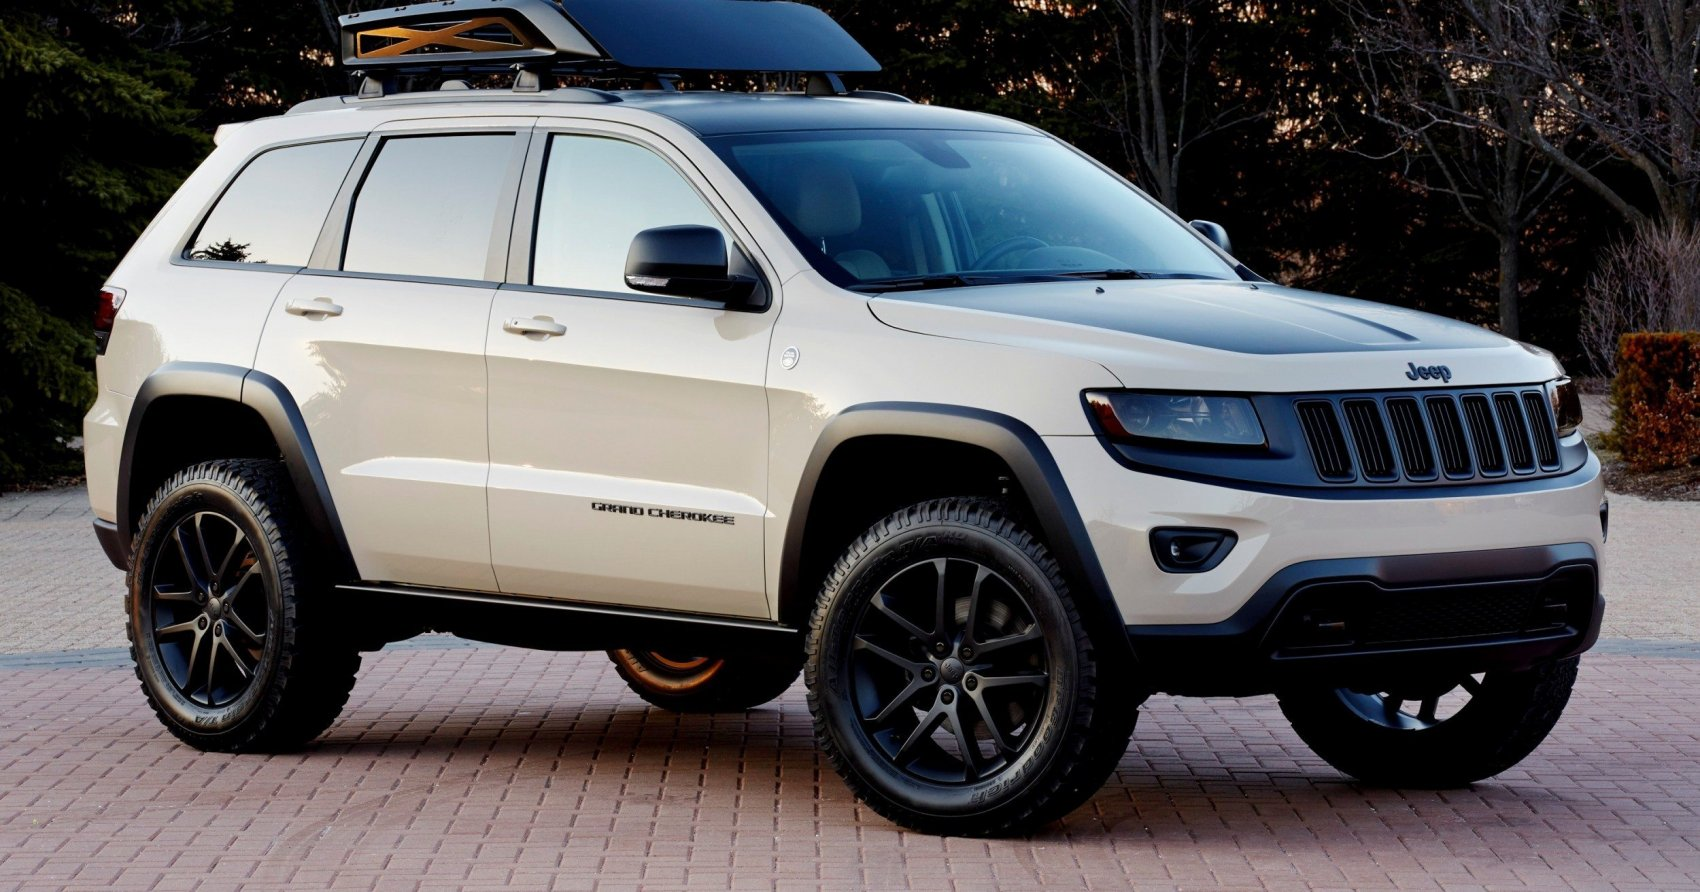 mopar adding huge jeep upgrade options